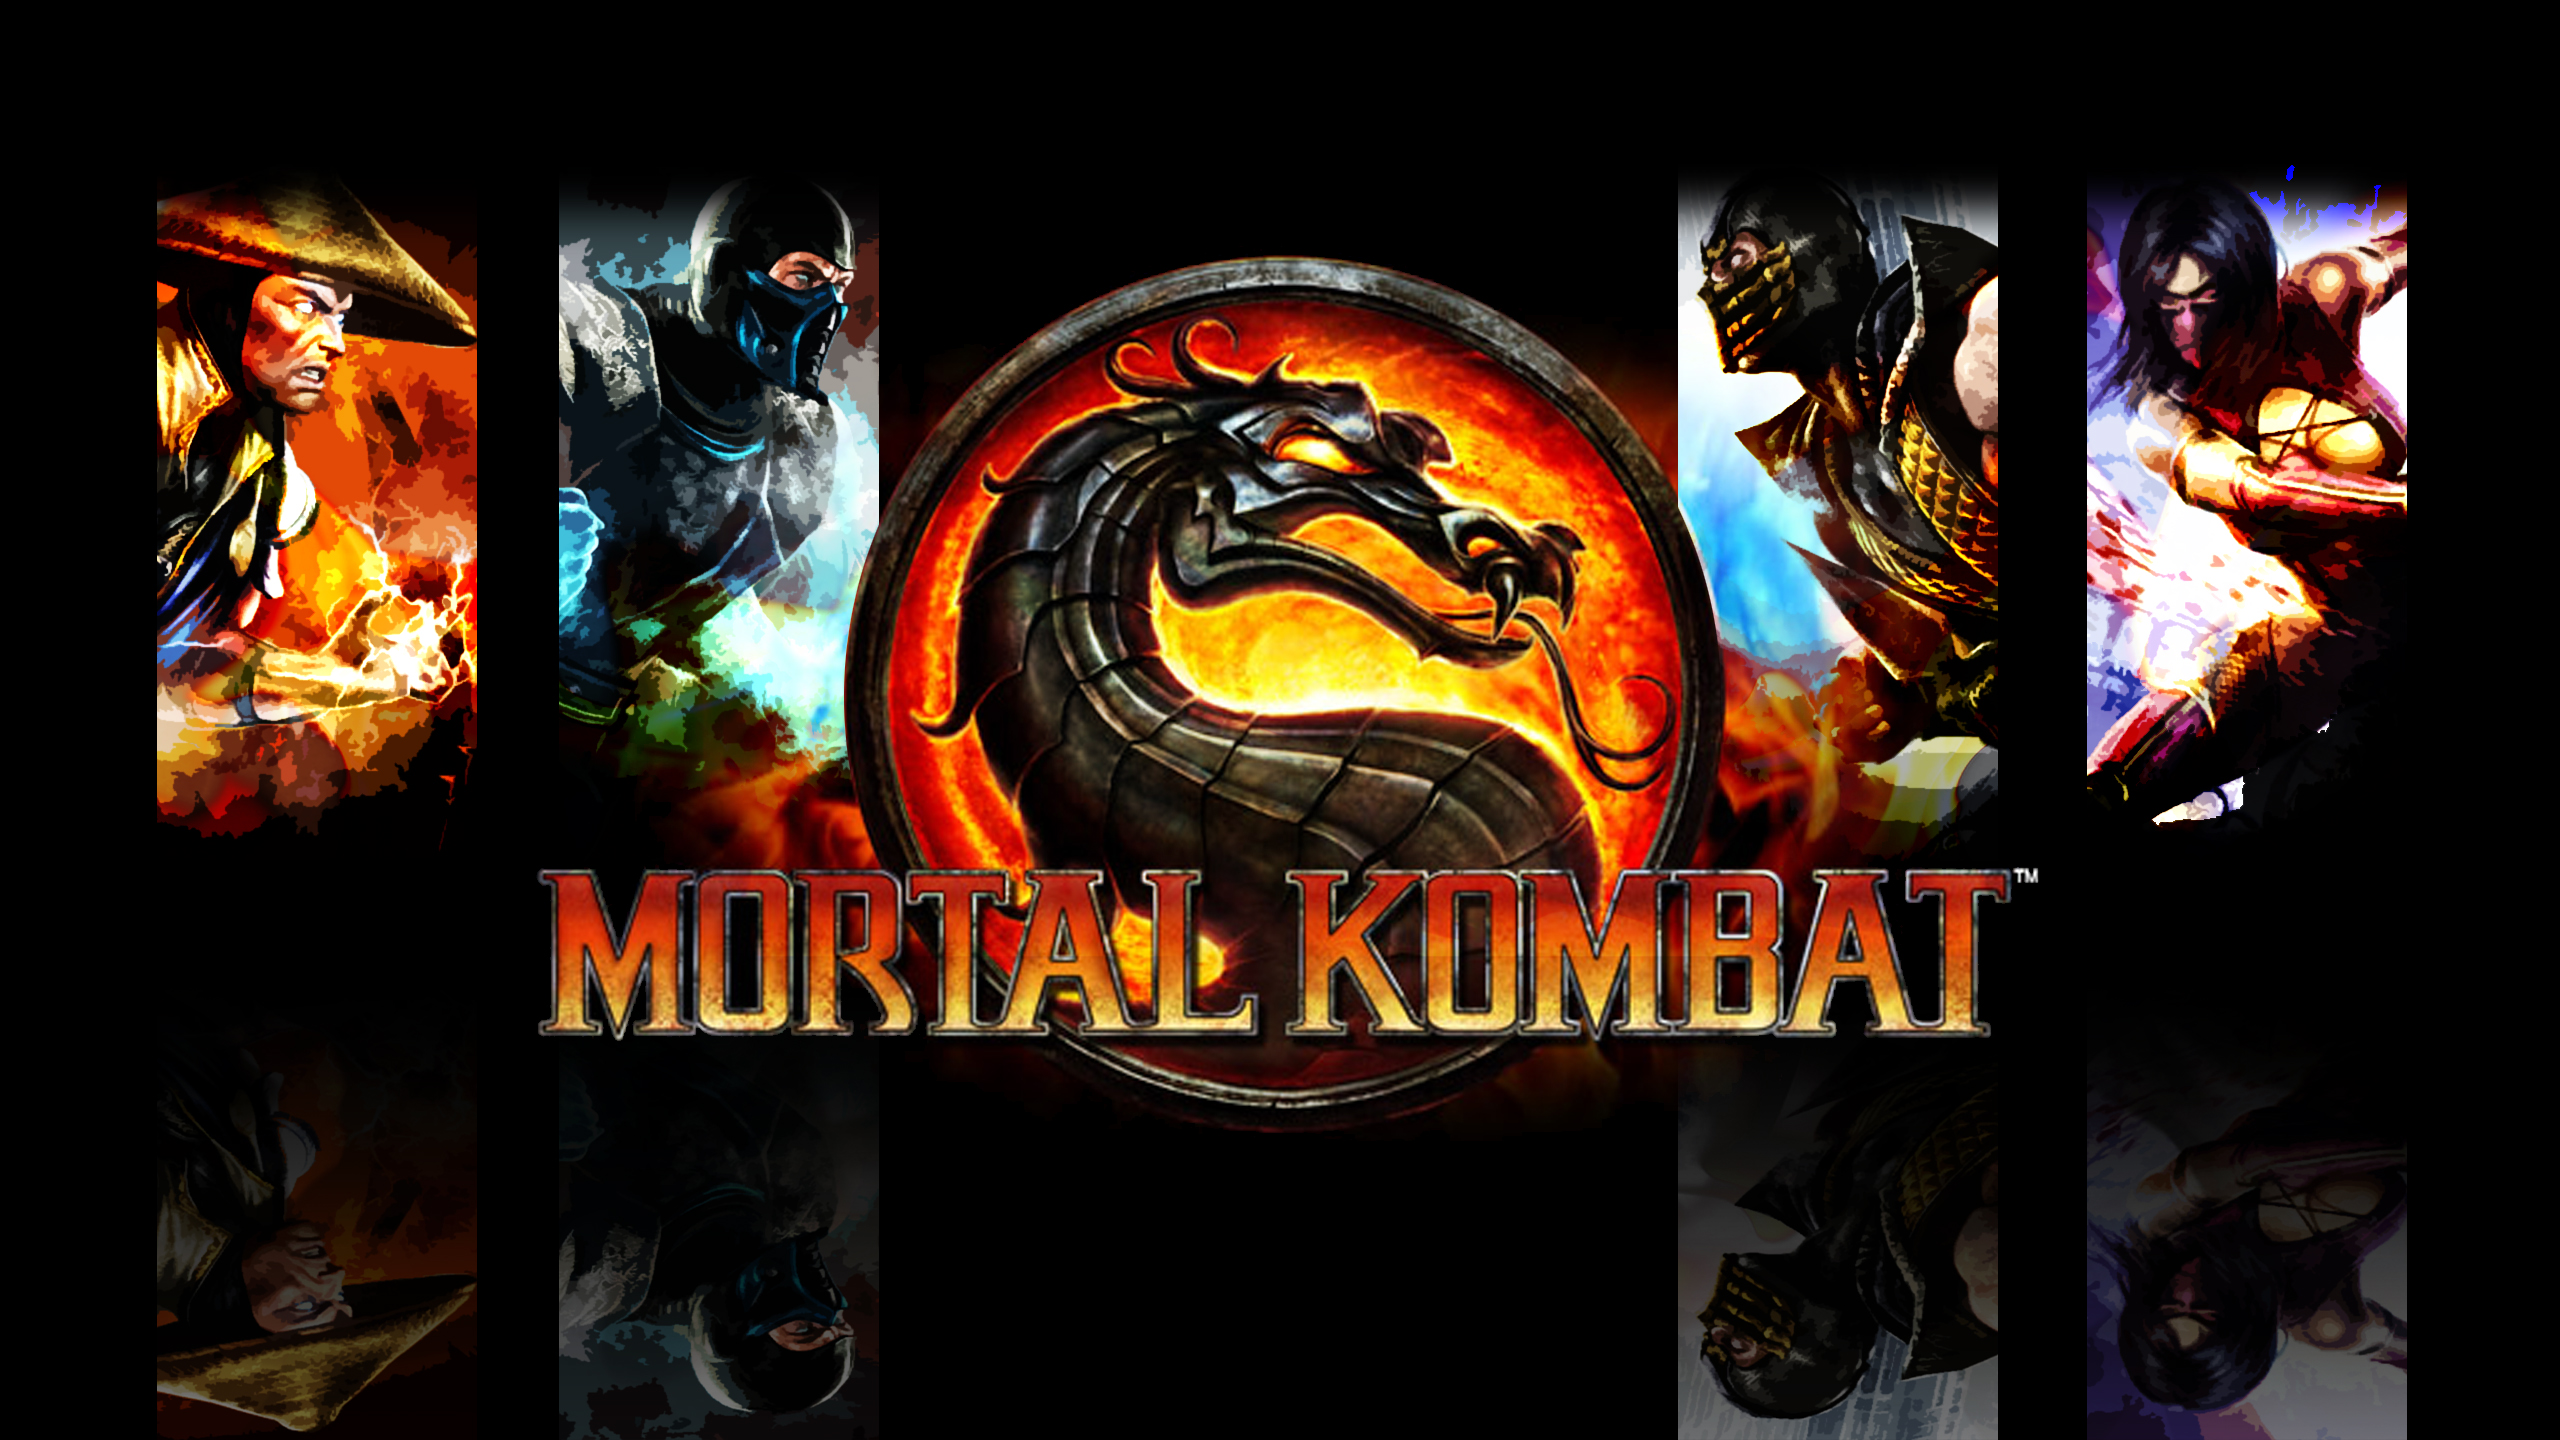 Mortal Kombat 9 Wallpaper